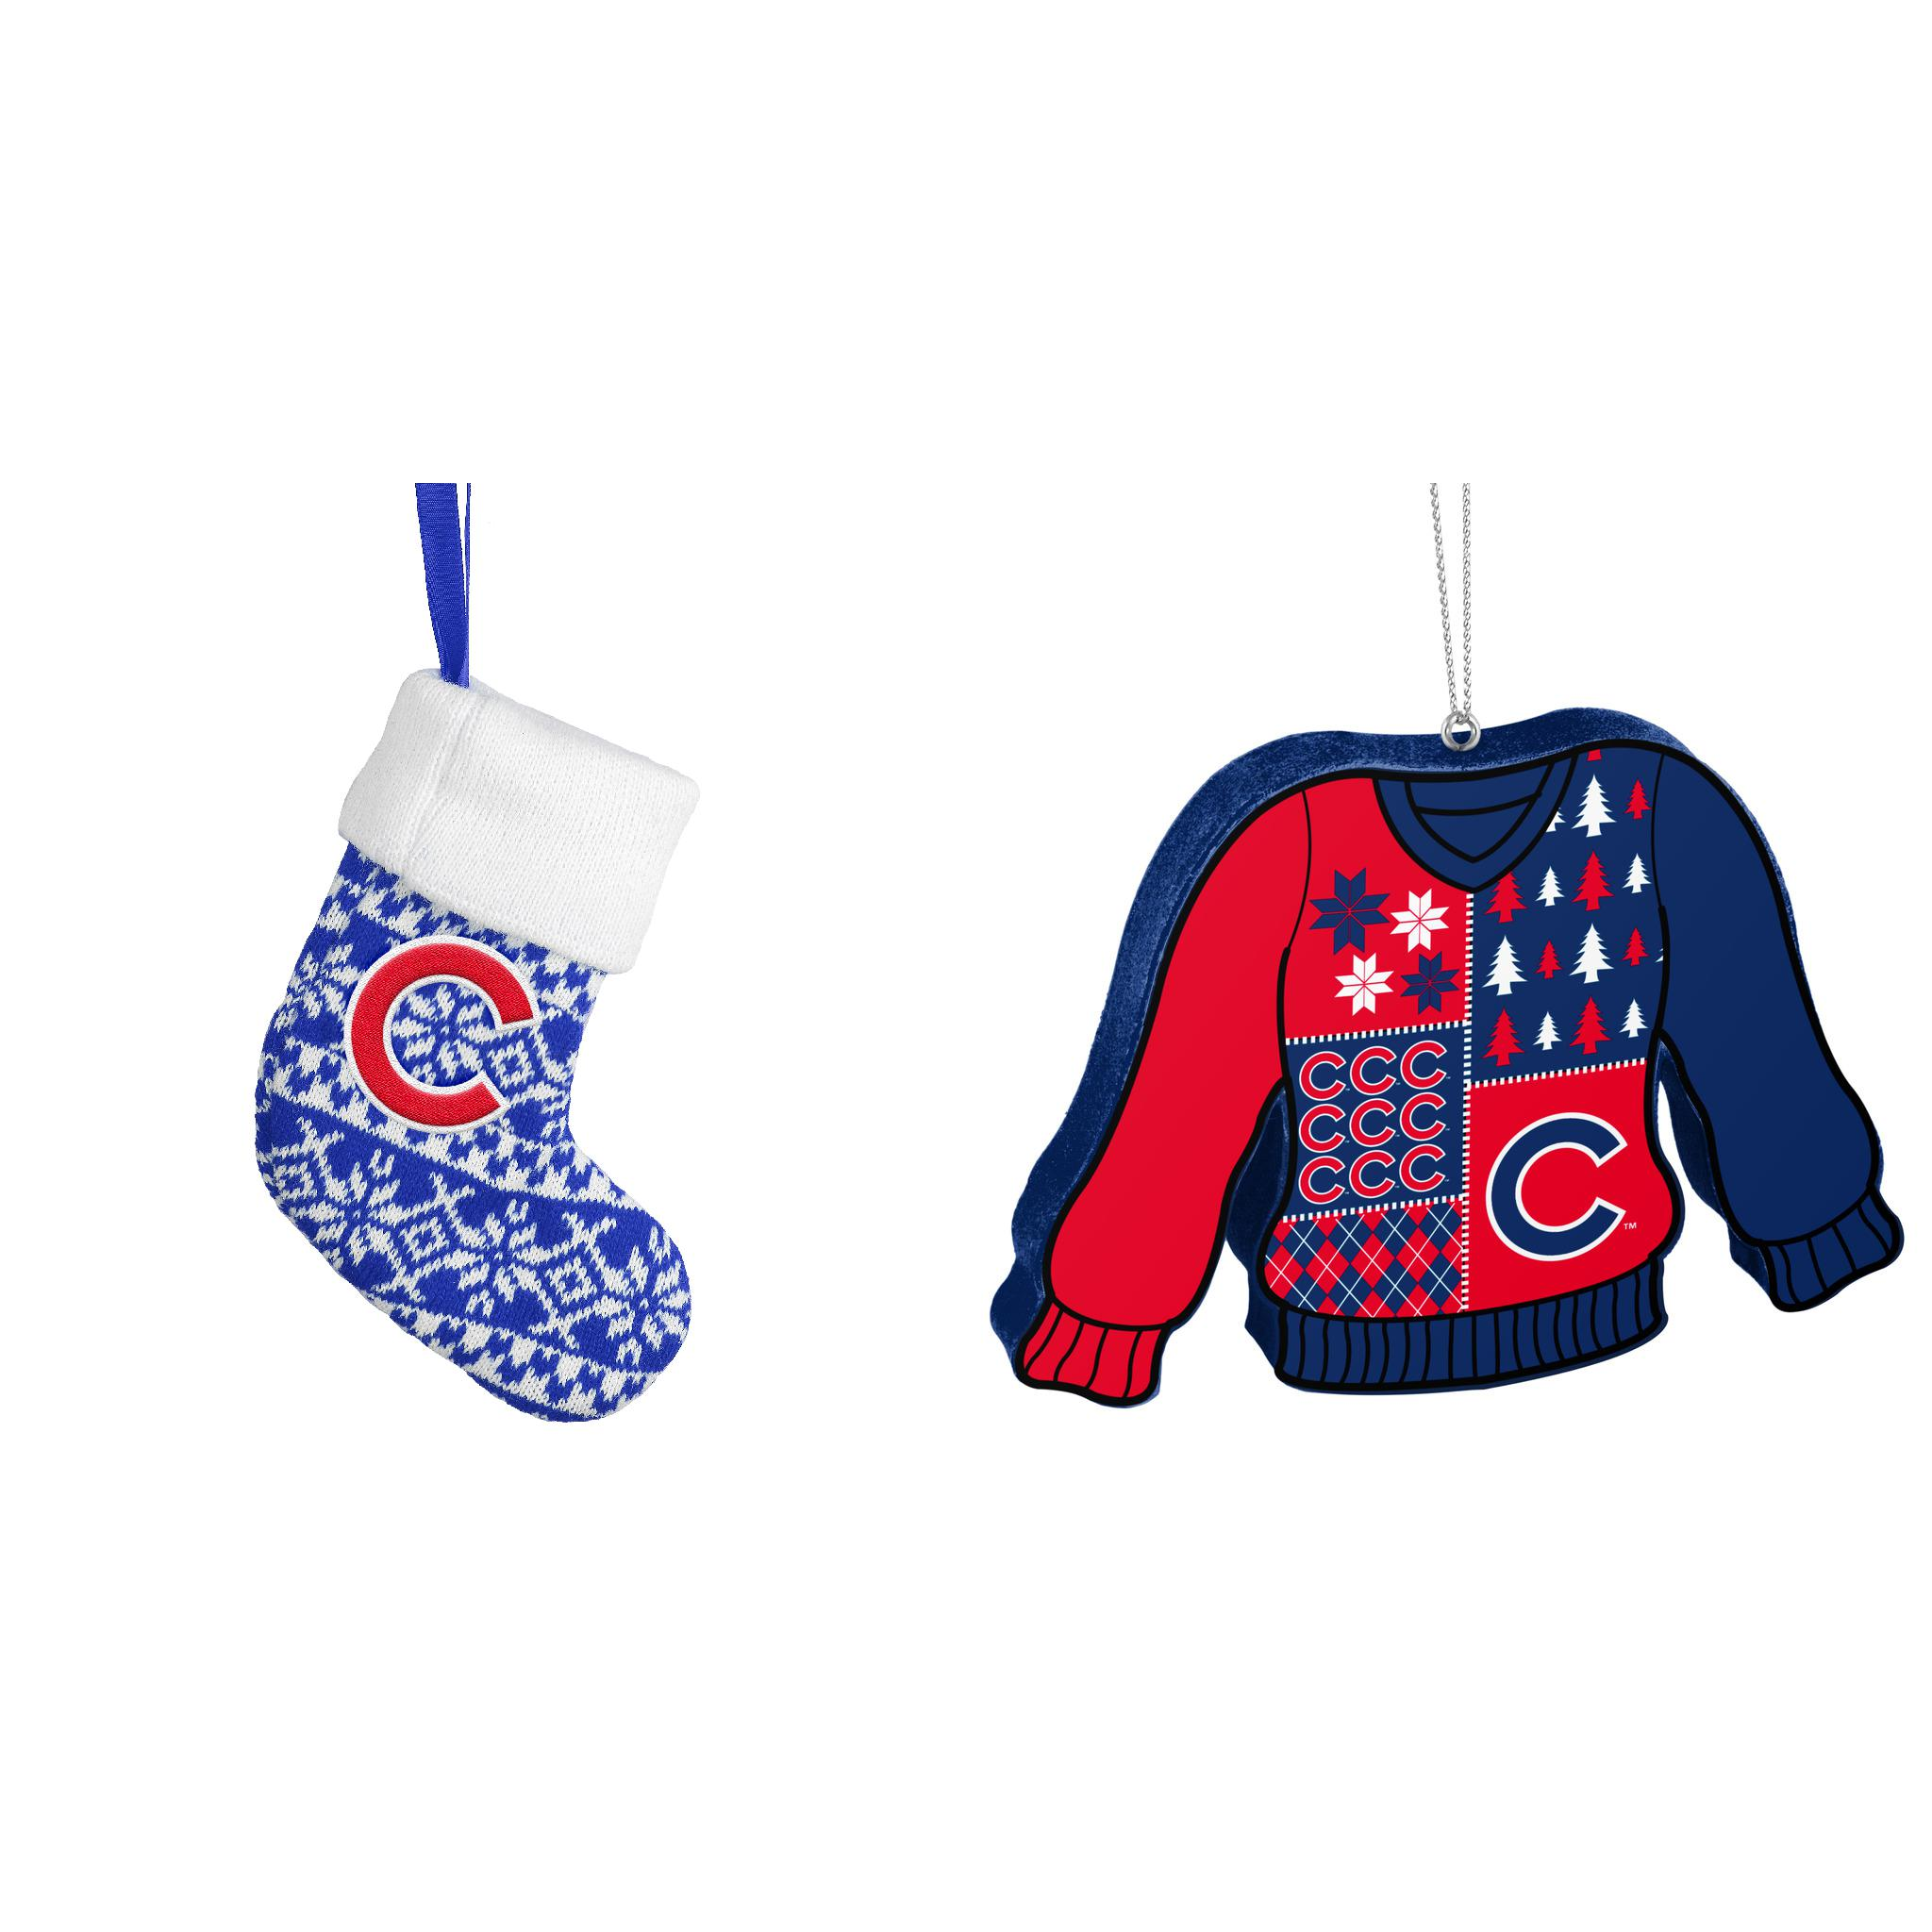 Mlb Chicago Cubs Ornament Stocking Knit Foam Ugly Sweater Christmas